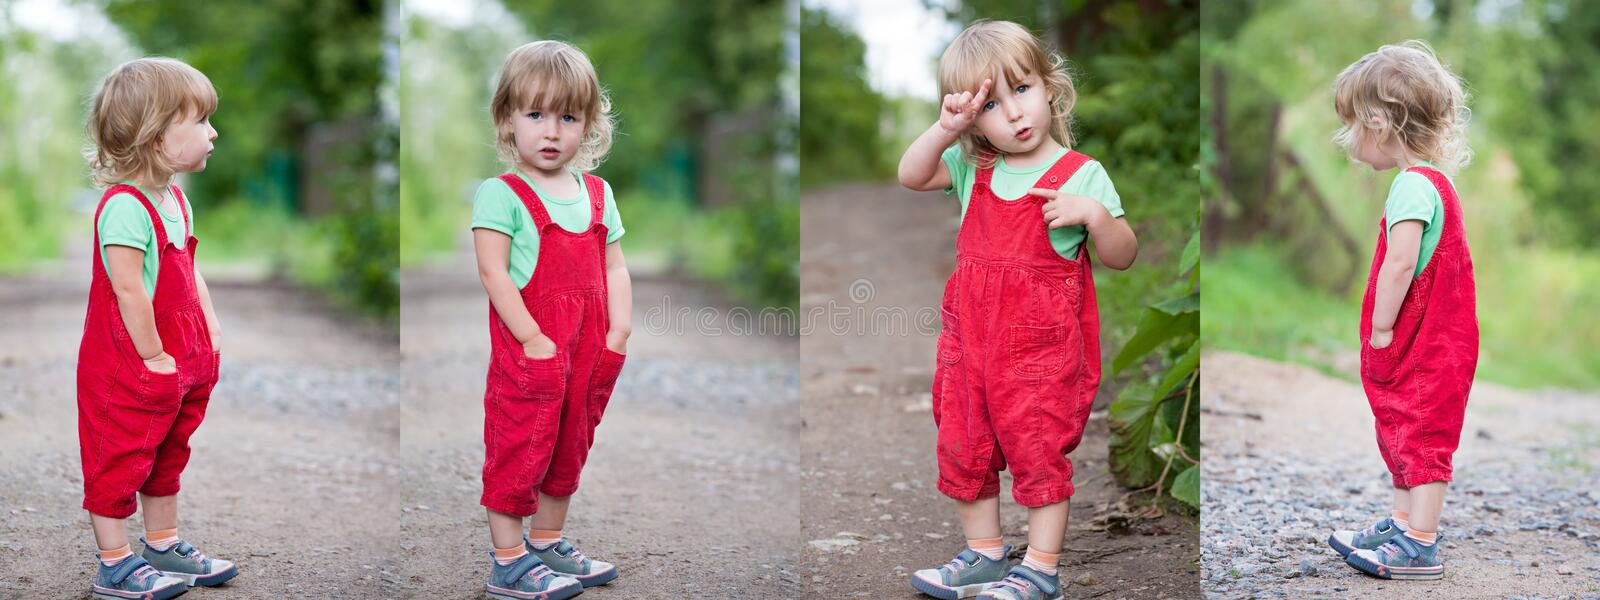 Collage of photos with funny kid girl in red pants standing tall on summer outdoor background stock images